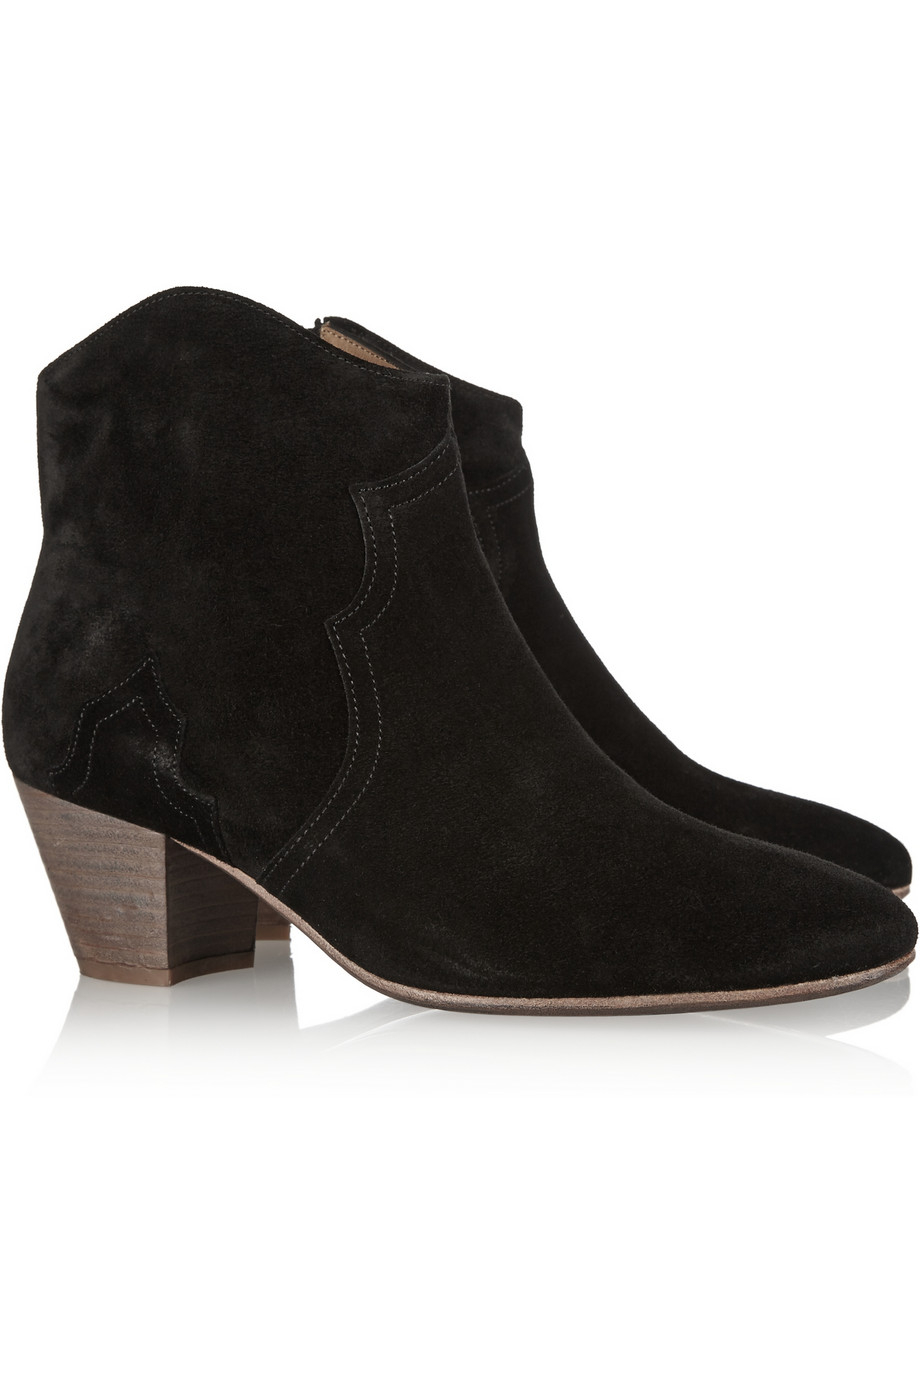 isabel marant the dicker suede ankle boots in black lyst. Black Bedroom Furniture Sets. Home Design Ideas